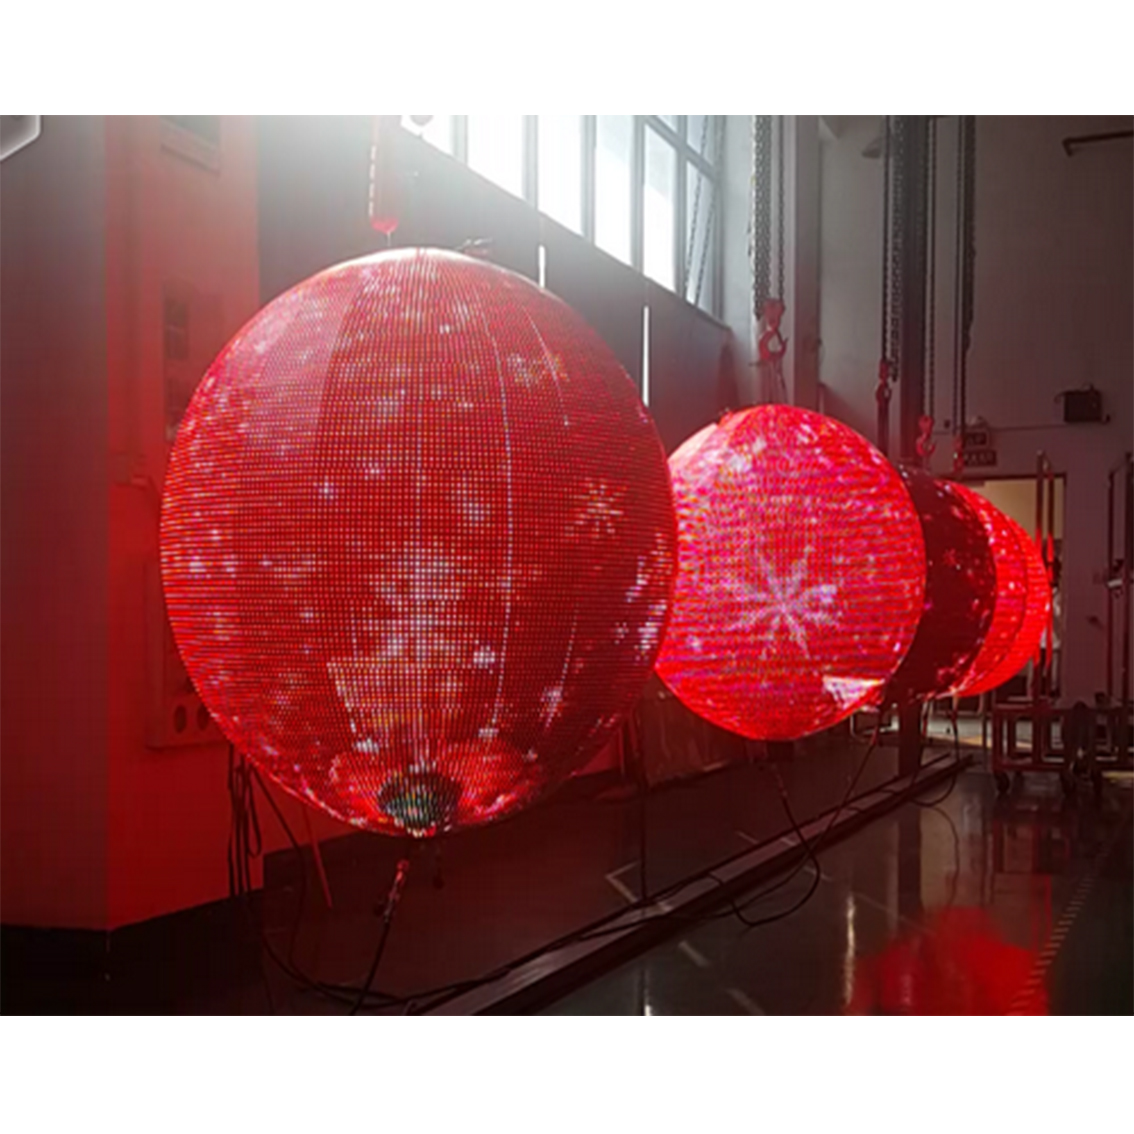 Sphere rgb led display